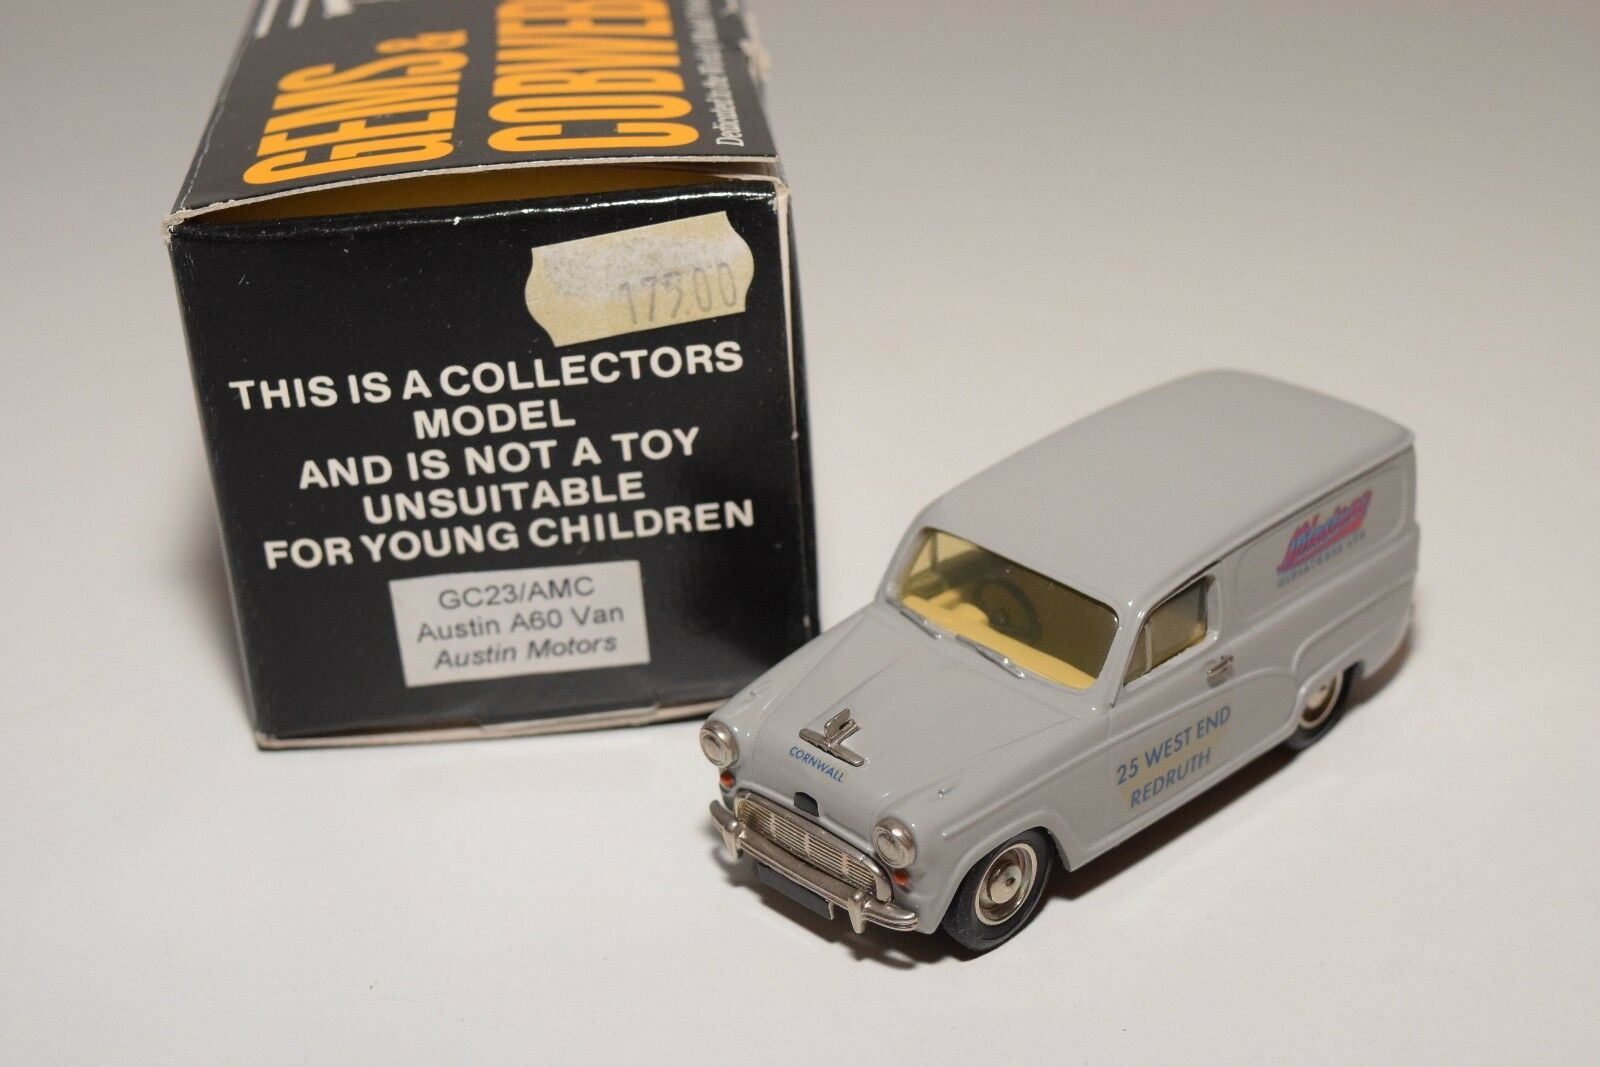 * GEMS & COBWEBS GC23AMC GC23 AMC AUSTIN A60 VAN AUSTIN MOTORS MINT BOXED